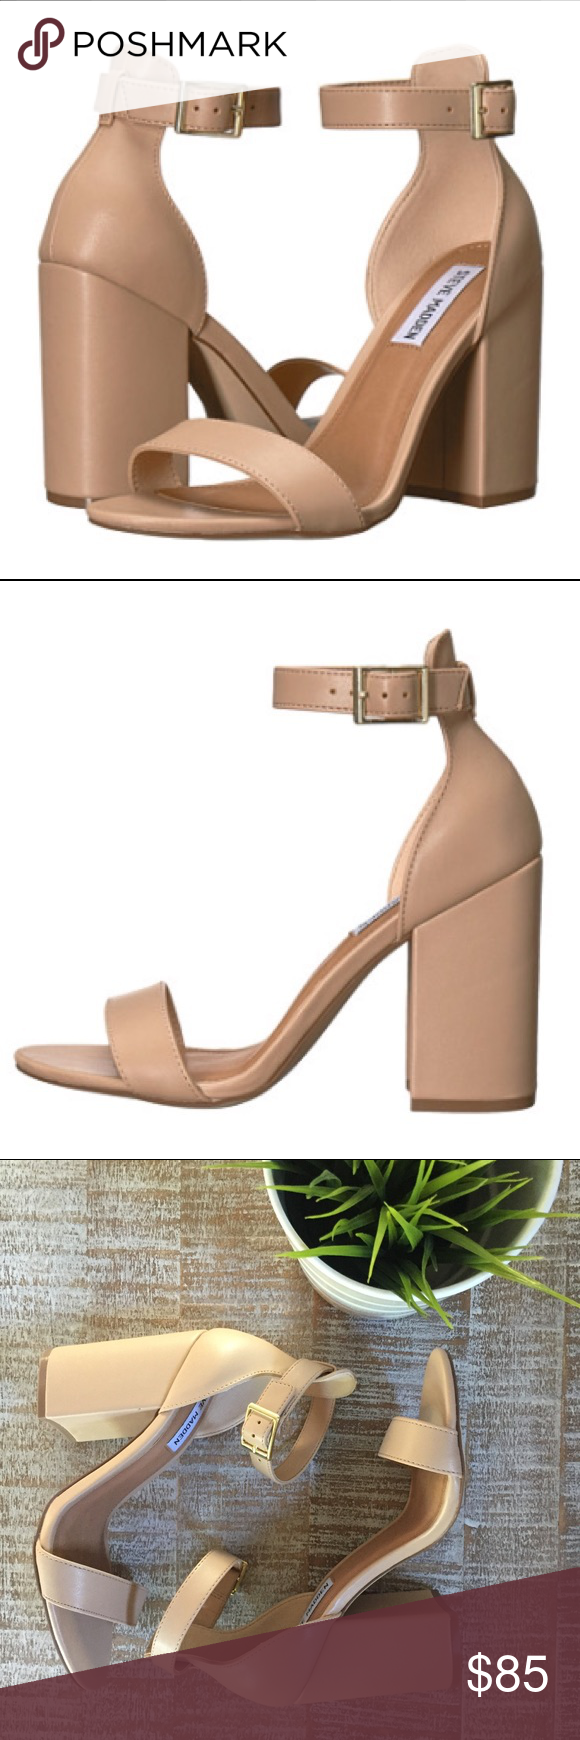 """⭐️Steve Madden Izzy Heels NWT, in original box Steve Madden """"Izzy"""" heels. The color is blush and looks like a nude. Heel height is 3 1/2. Brand new never worn. Women's size 8.   ❌ NO TRADES  Same day / Next day Shipping Non smoking & Pet free Home  Bundle discount 10% off 2+ item Steve Madden Shoes Heels"""